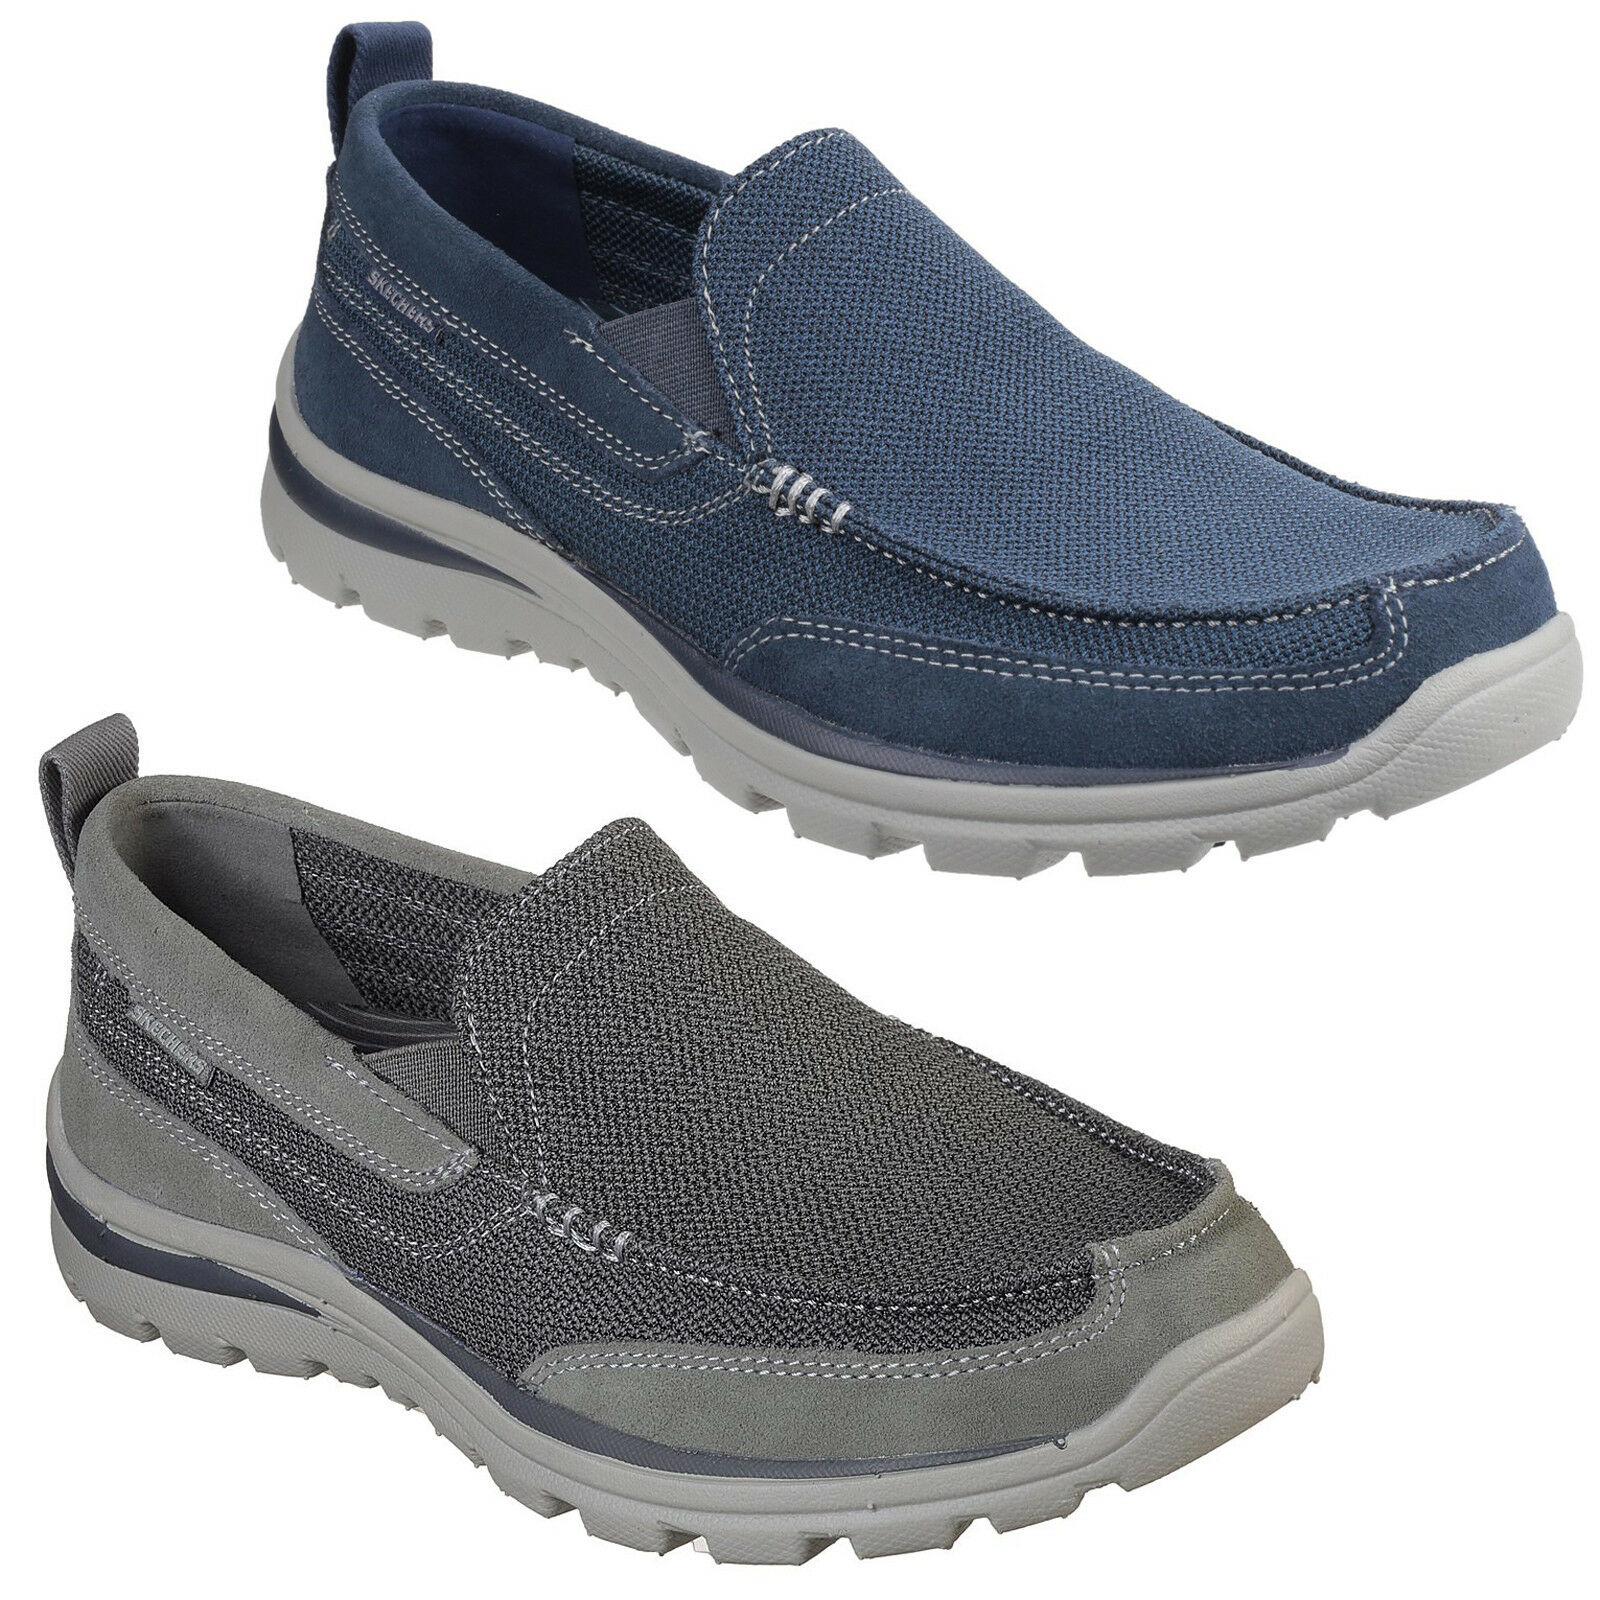 c25ed26b2e2258 Skechers Fit Superior - Milford shoes Mens Memory Foam Trainers 64365  Relaxed nqrkqx6792-Casual Shoes